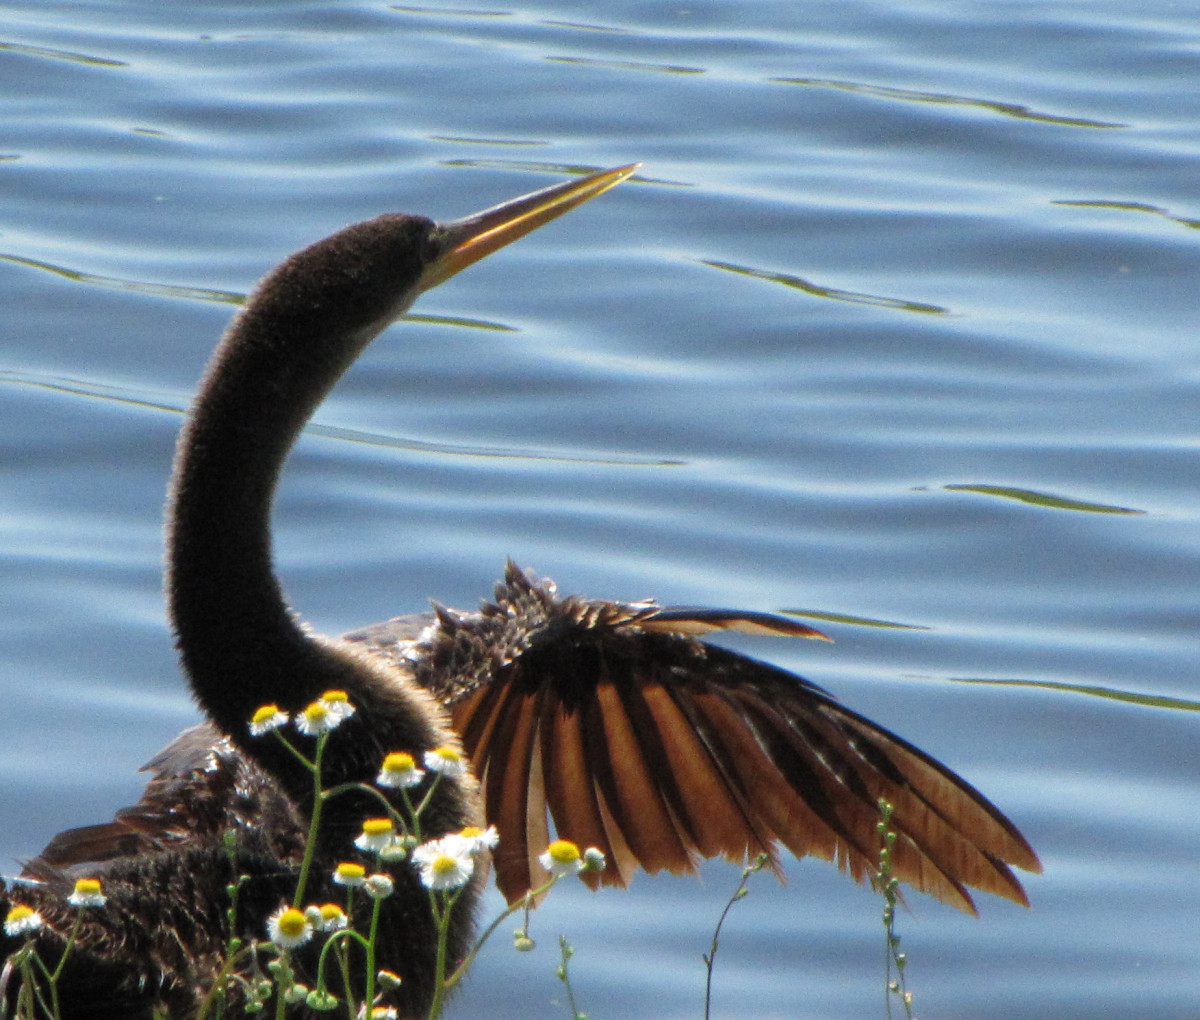 Pointed beak = Anhinga